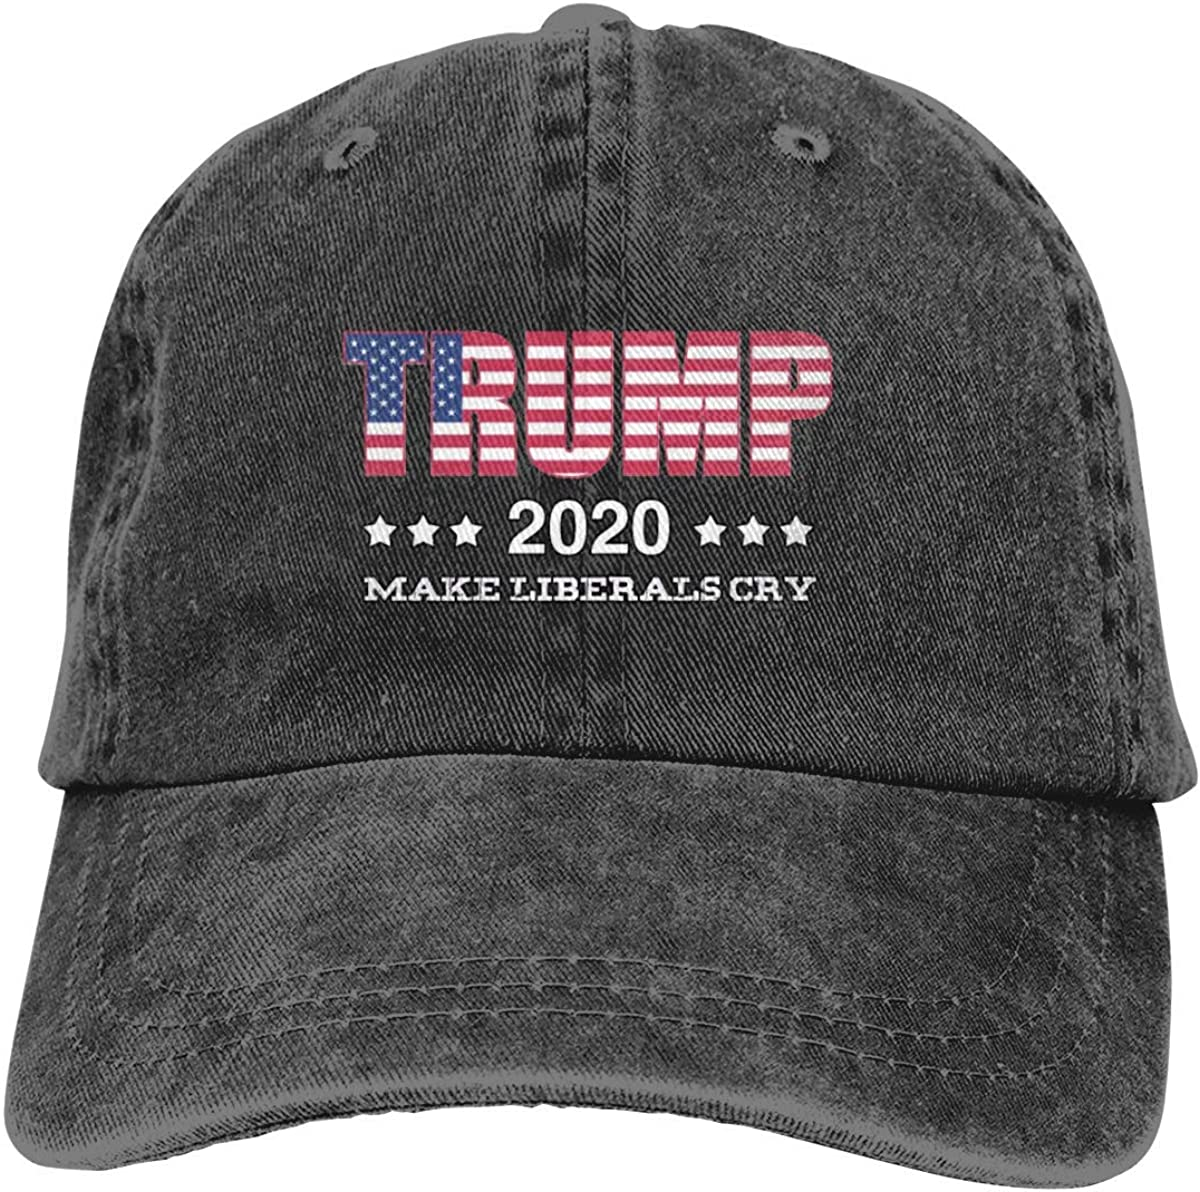 Trump 2020 The Sequel Make Liberals Cry Again Baseball Cap Cowboy Caps - Adjustable Fashion Hip Hop Jeans Hat for Men Women